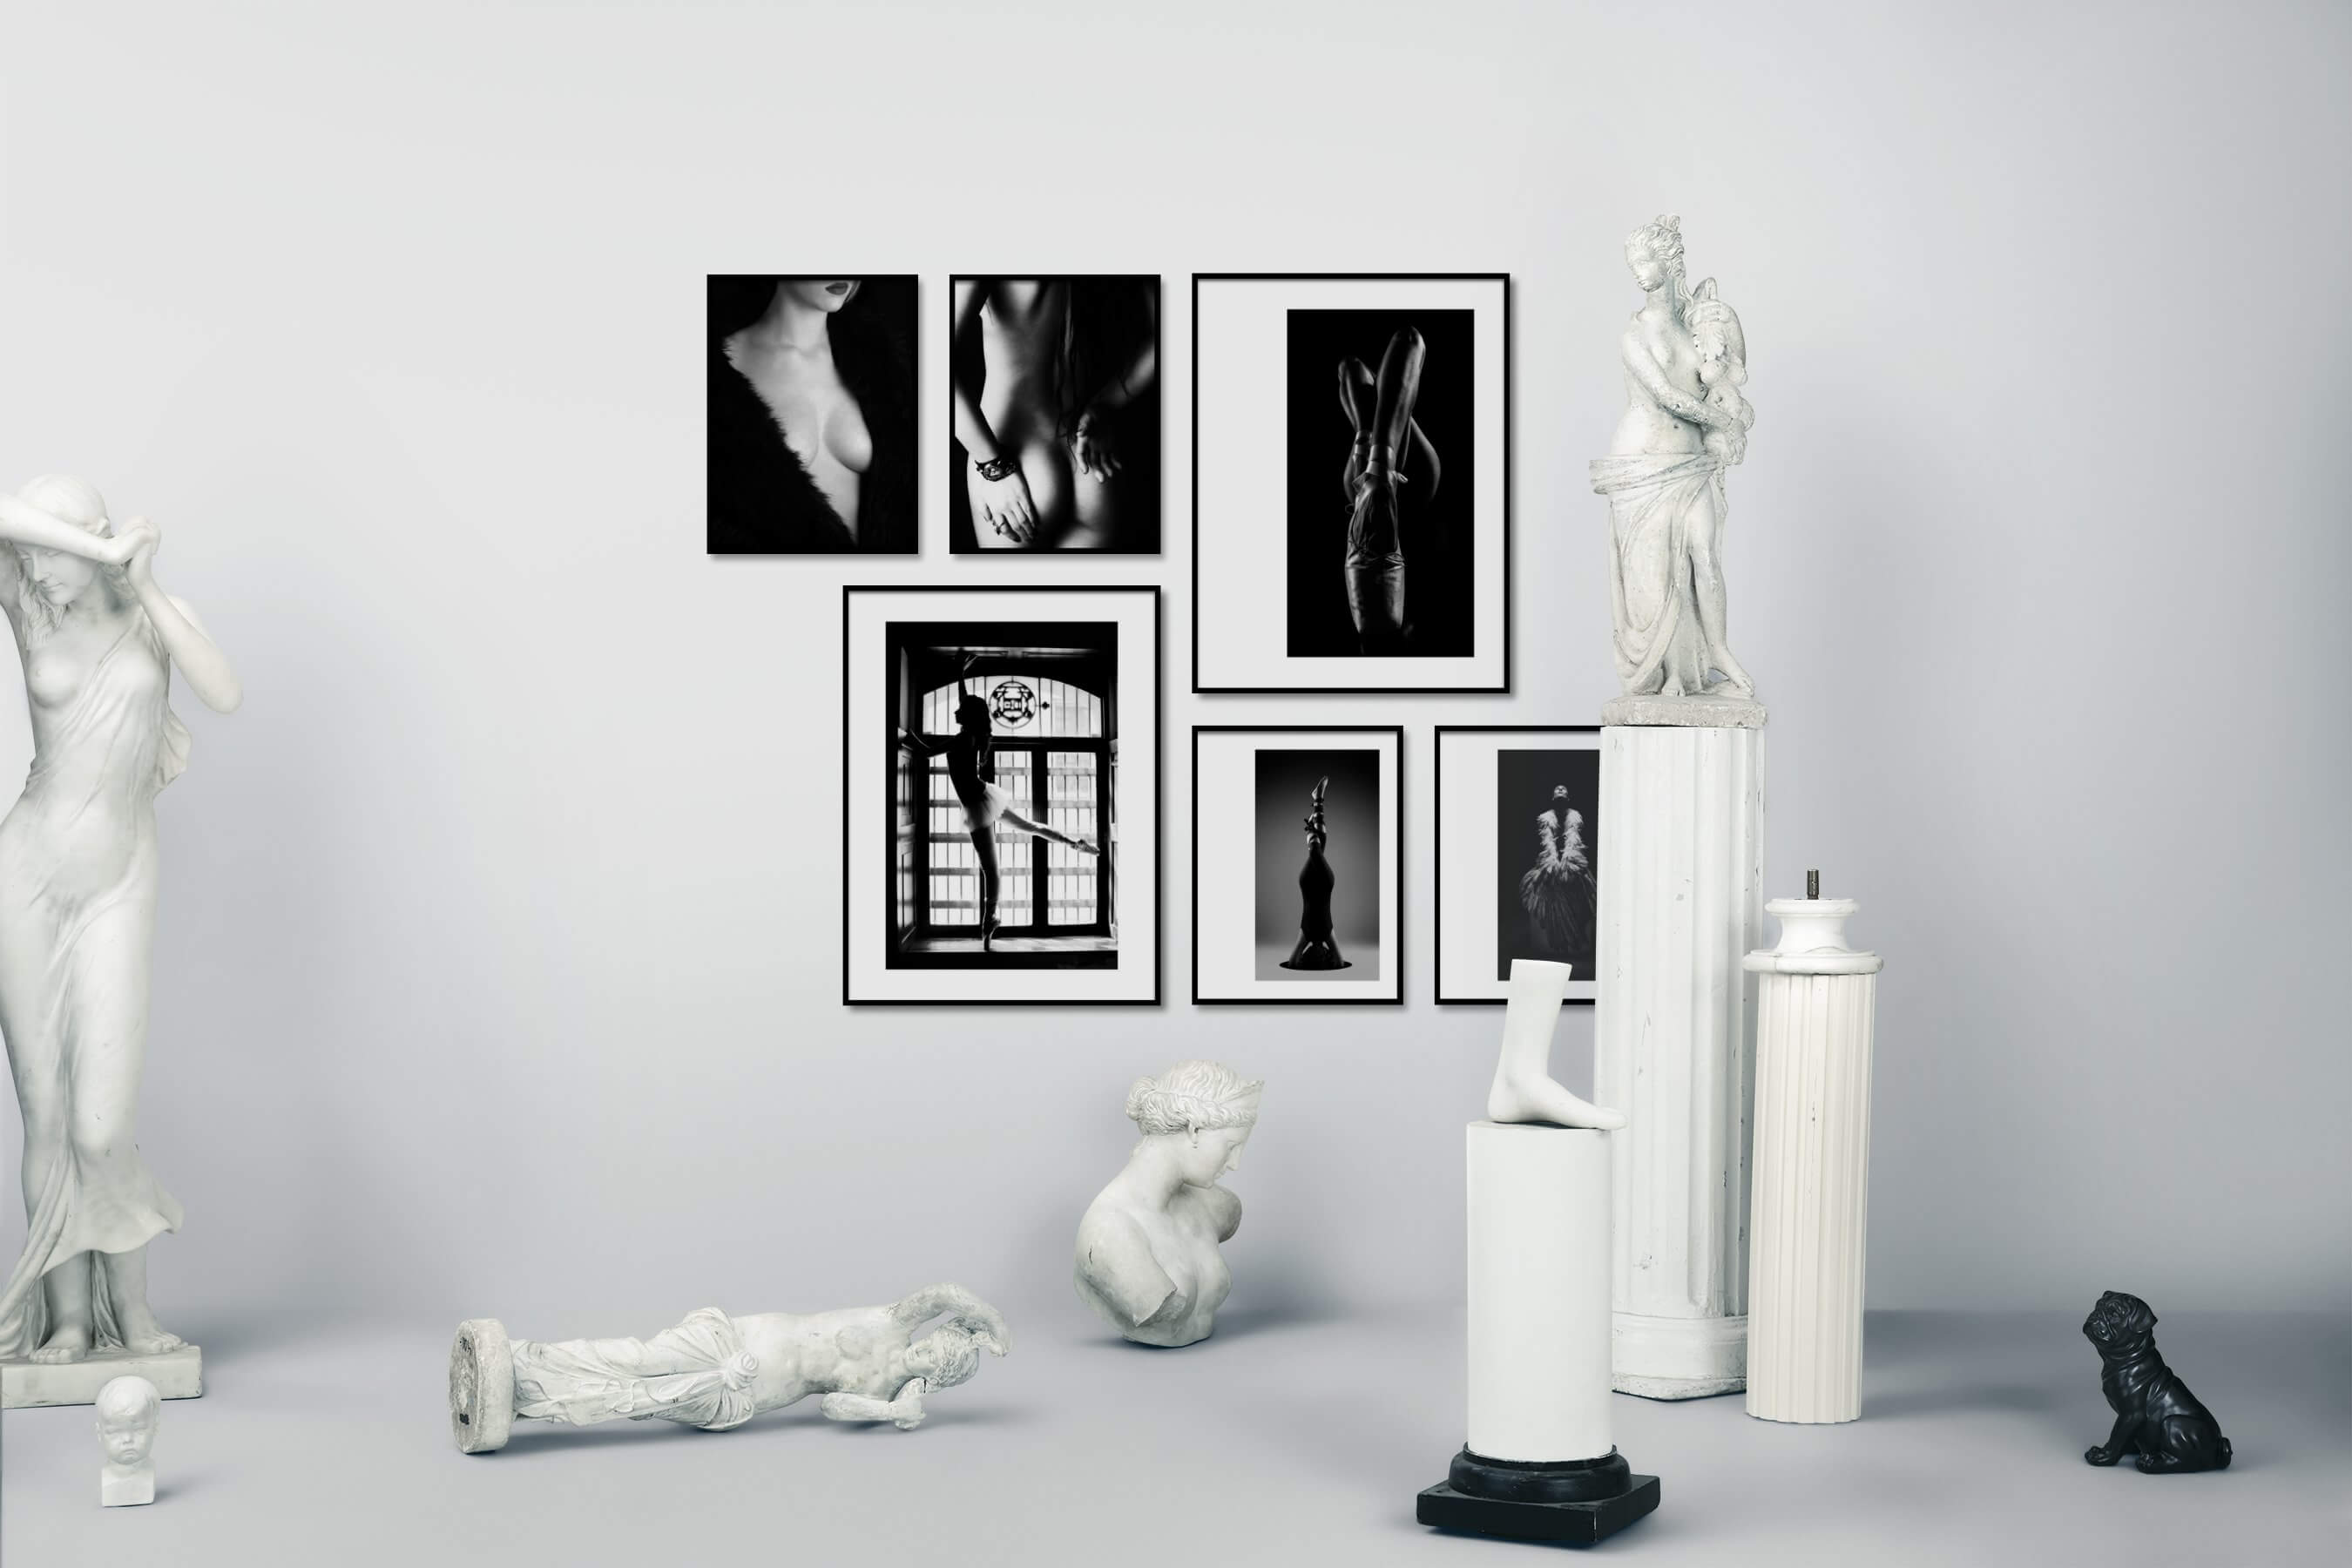 Gallery wall idea with six framed pictures arranged on a wall depicting Fashion & Beauty, Black & White, Dark Tones, For the Moderate, For the Minimalist, and Mindfulness